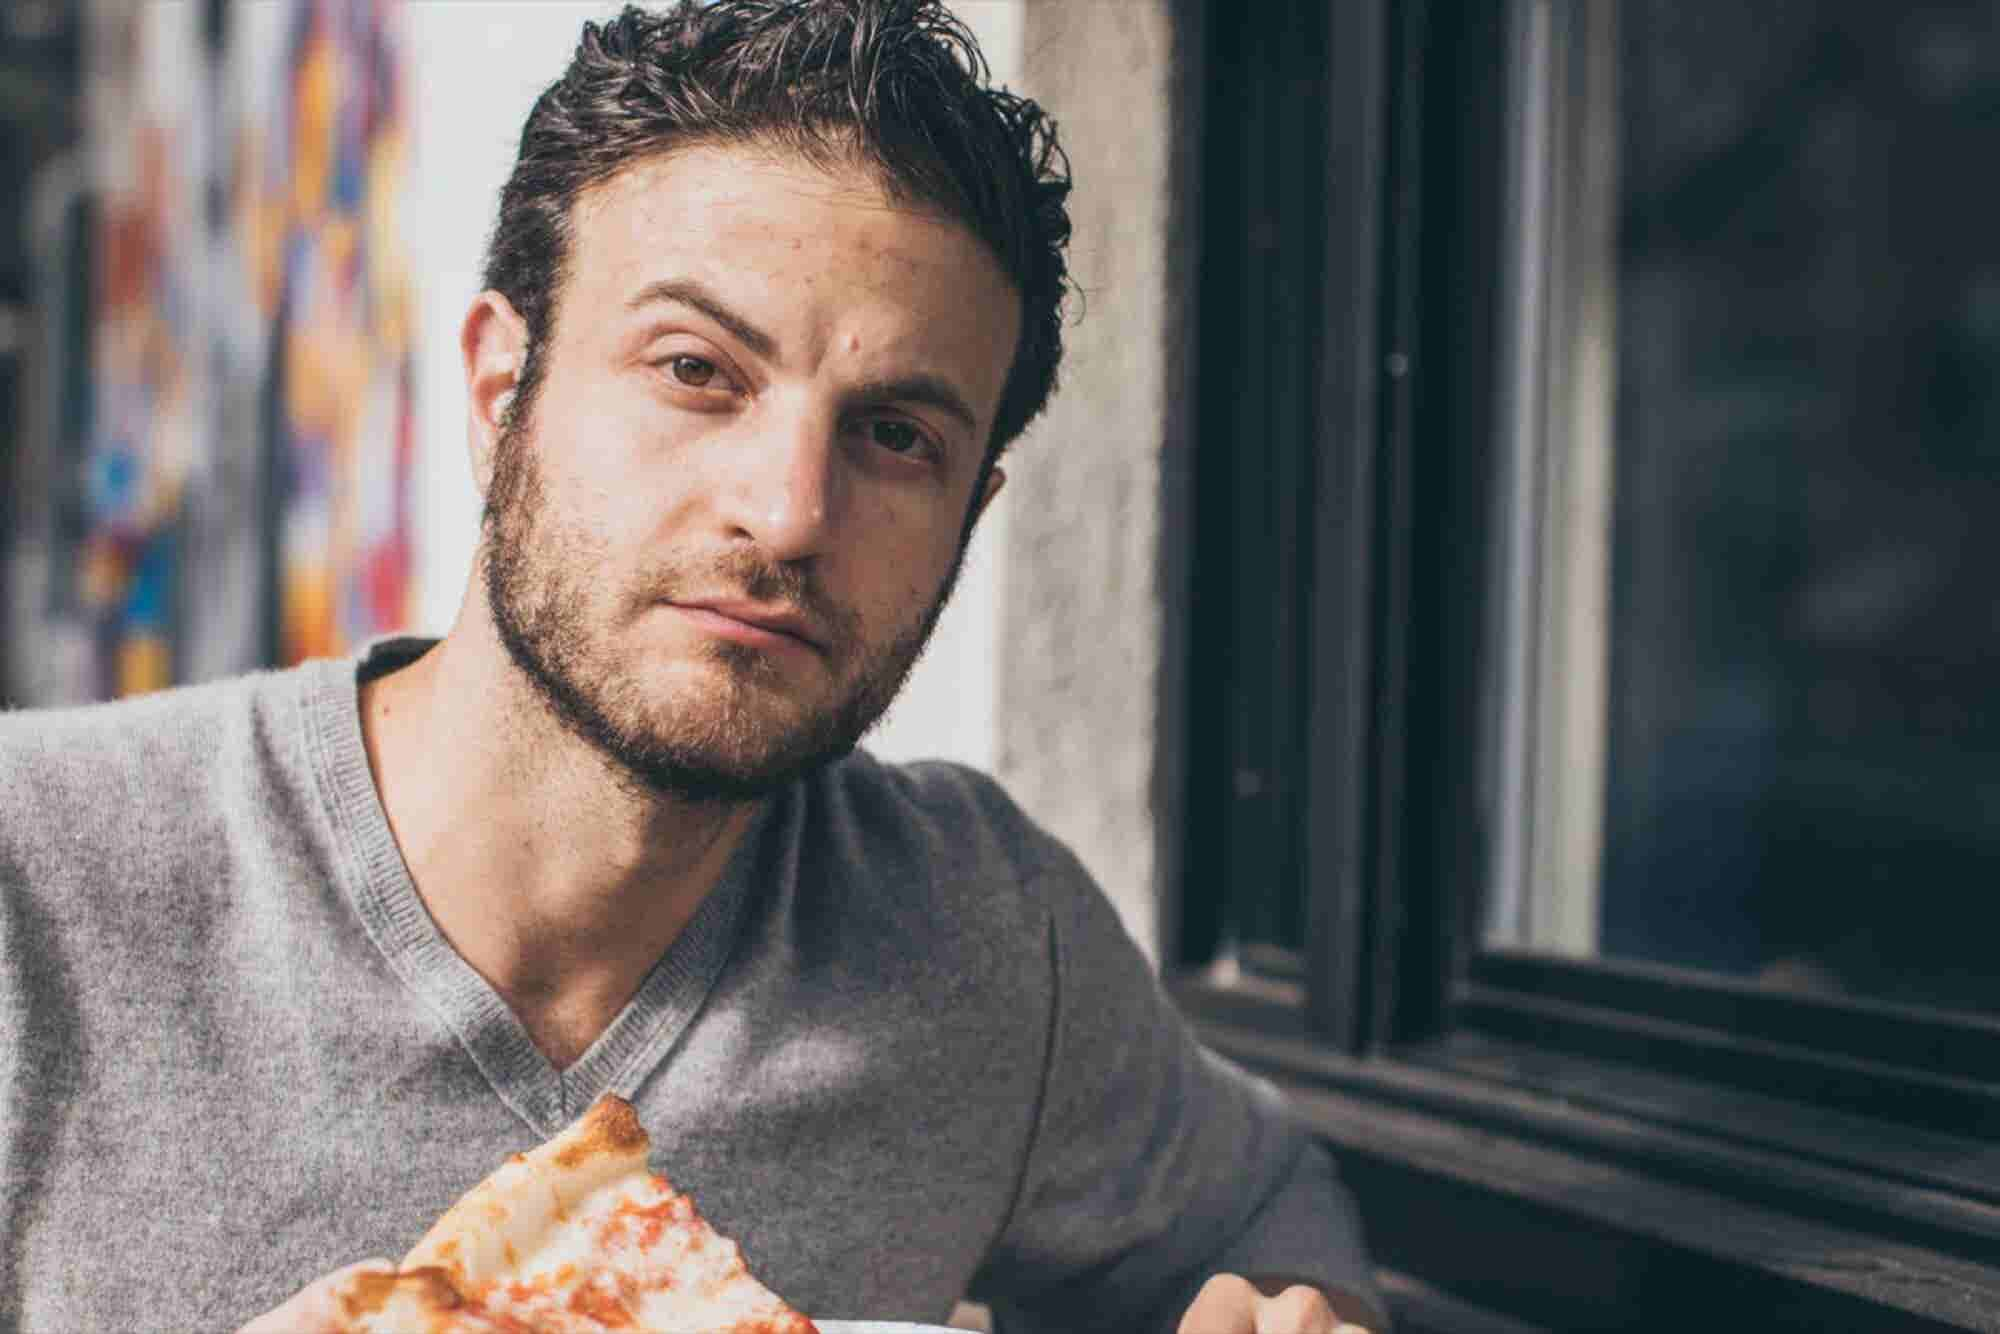 How This Former TV Producer Turned His Love of Food Into a Social Media Empire